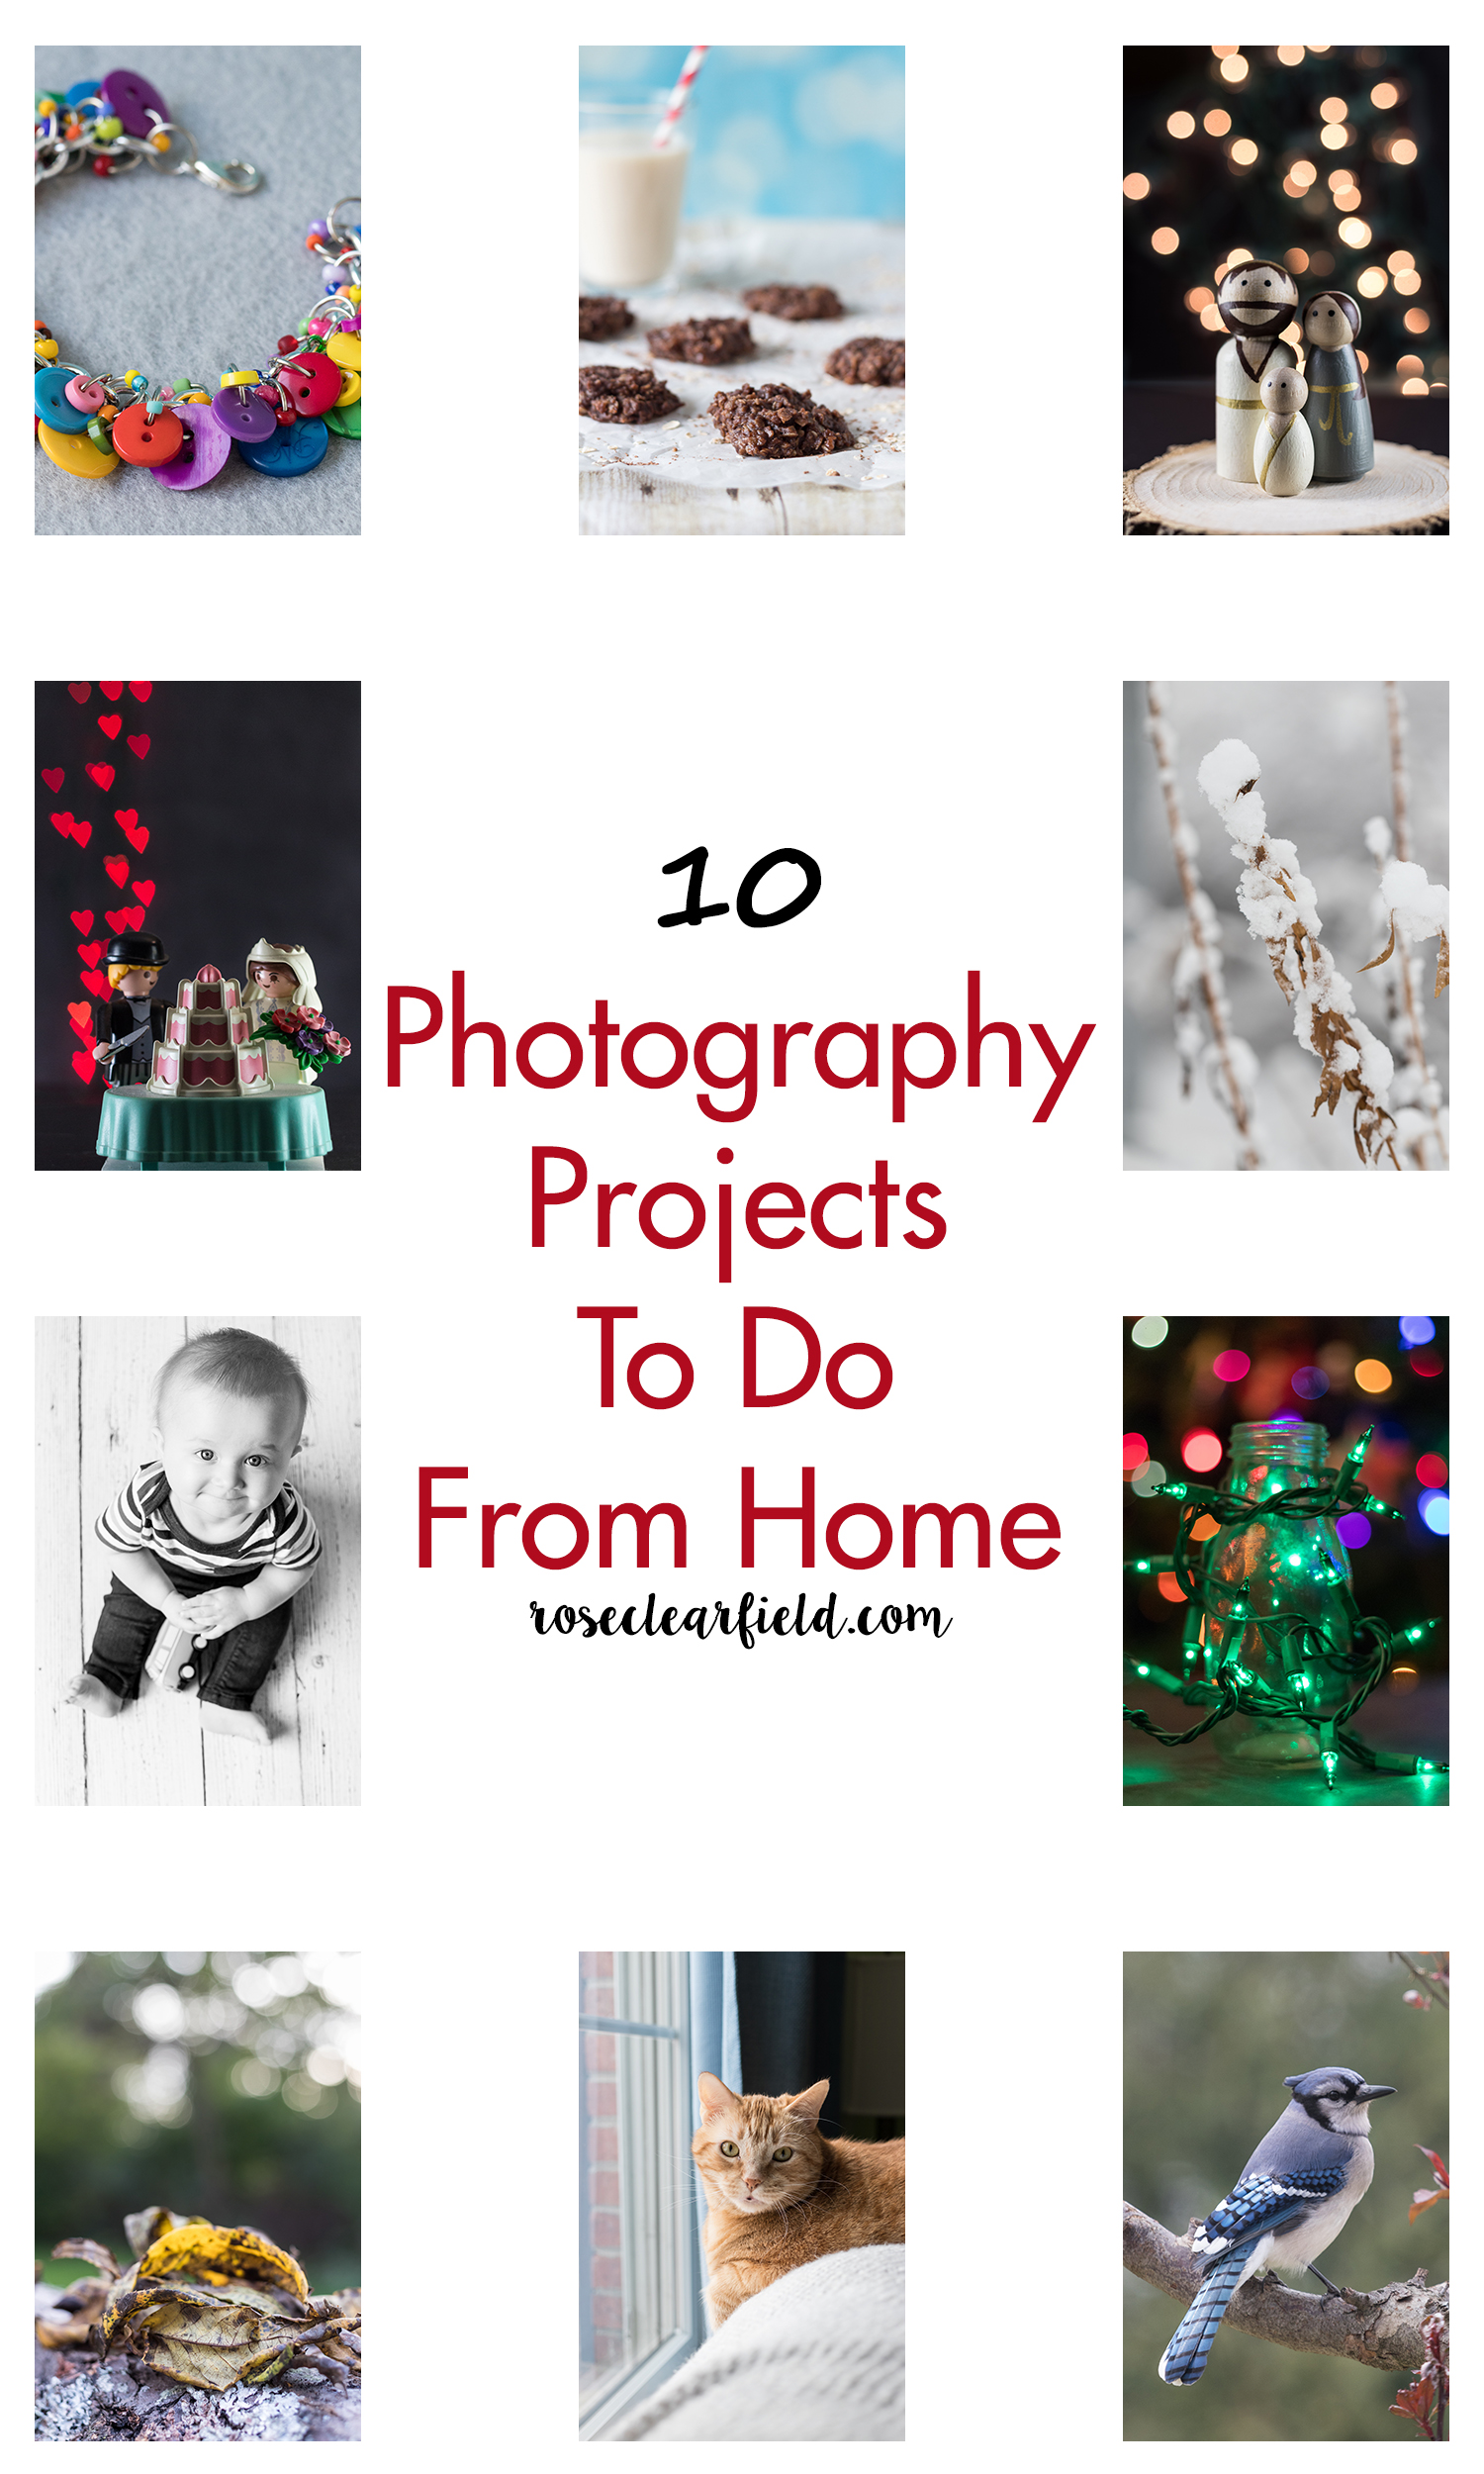 10 Photography Projects To Do From Home | https://www.roseclearfield.com